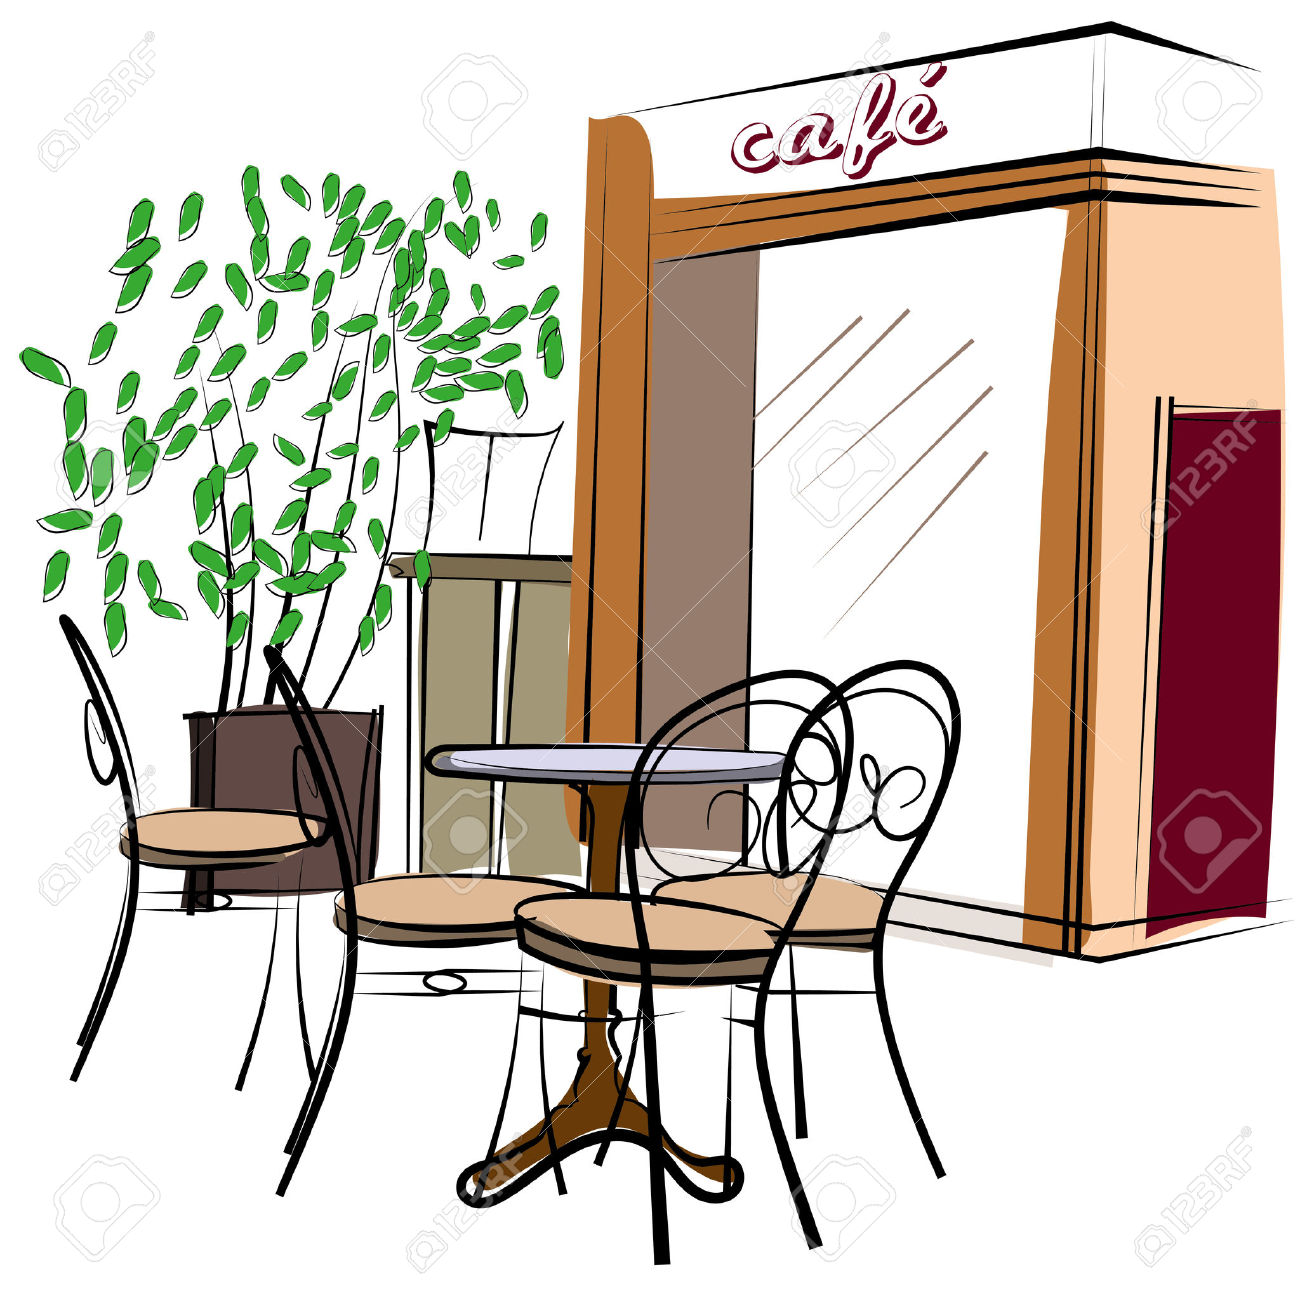 Cute Hand Drawn Style Illustration Of A Cafe Royalty Free Cliparts.